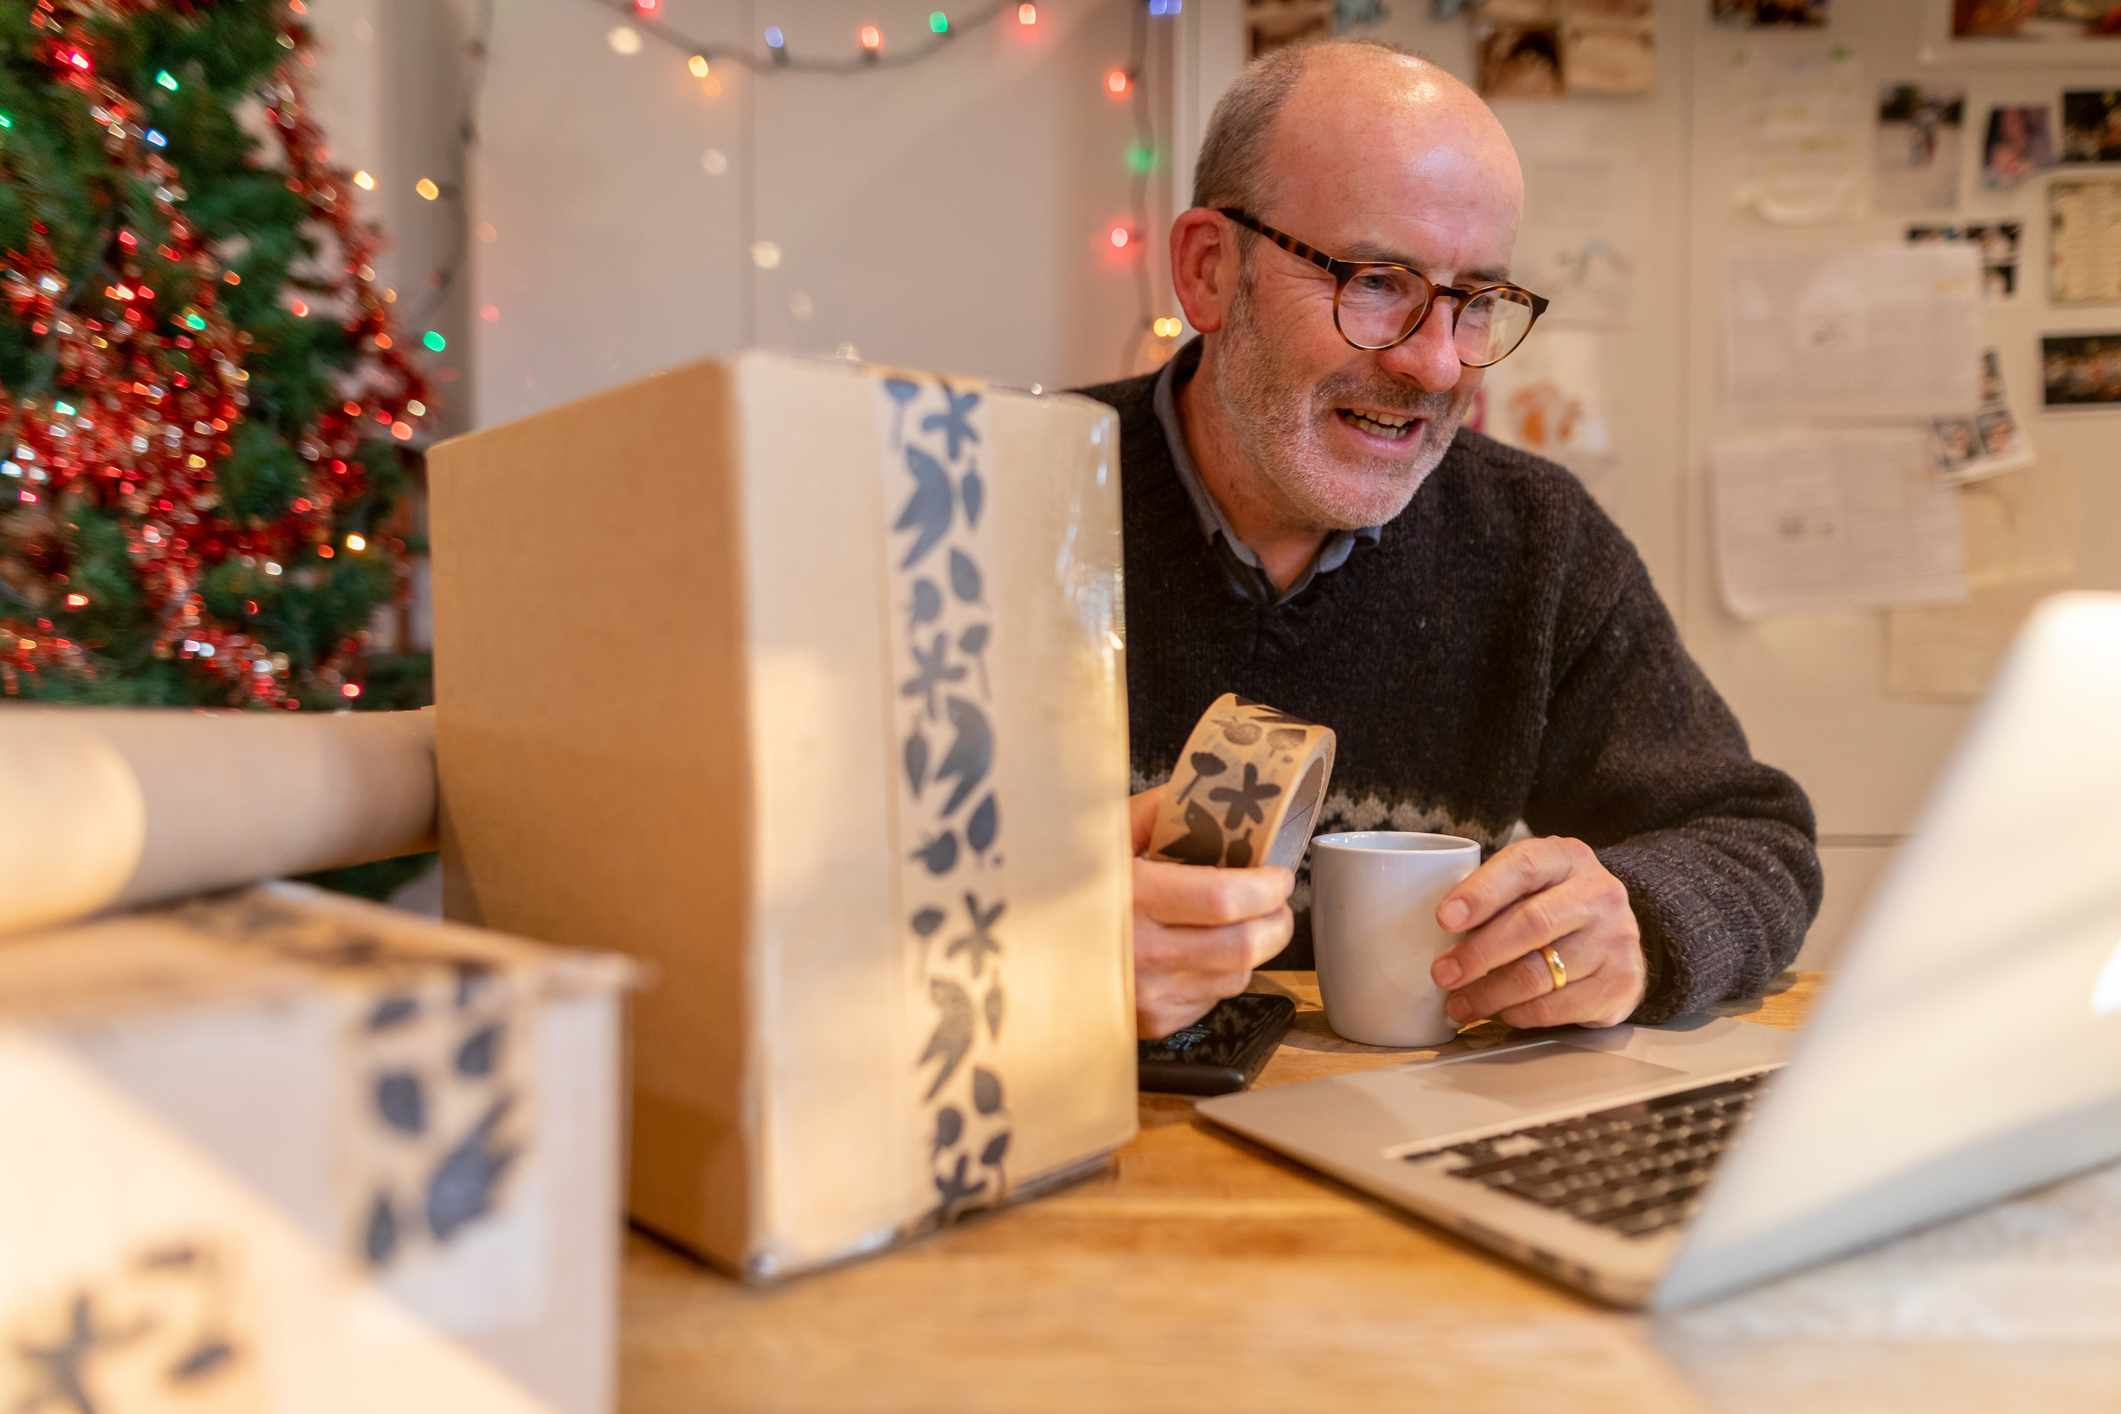 Man wrapping parcels and using laptop